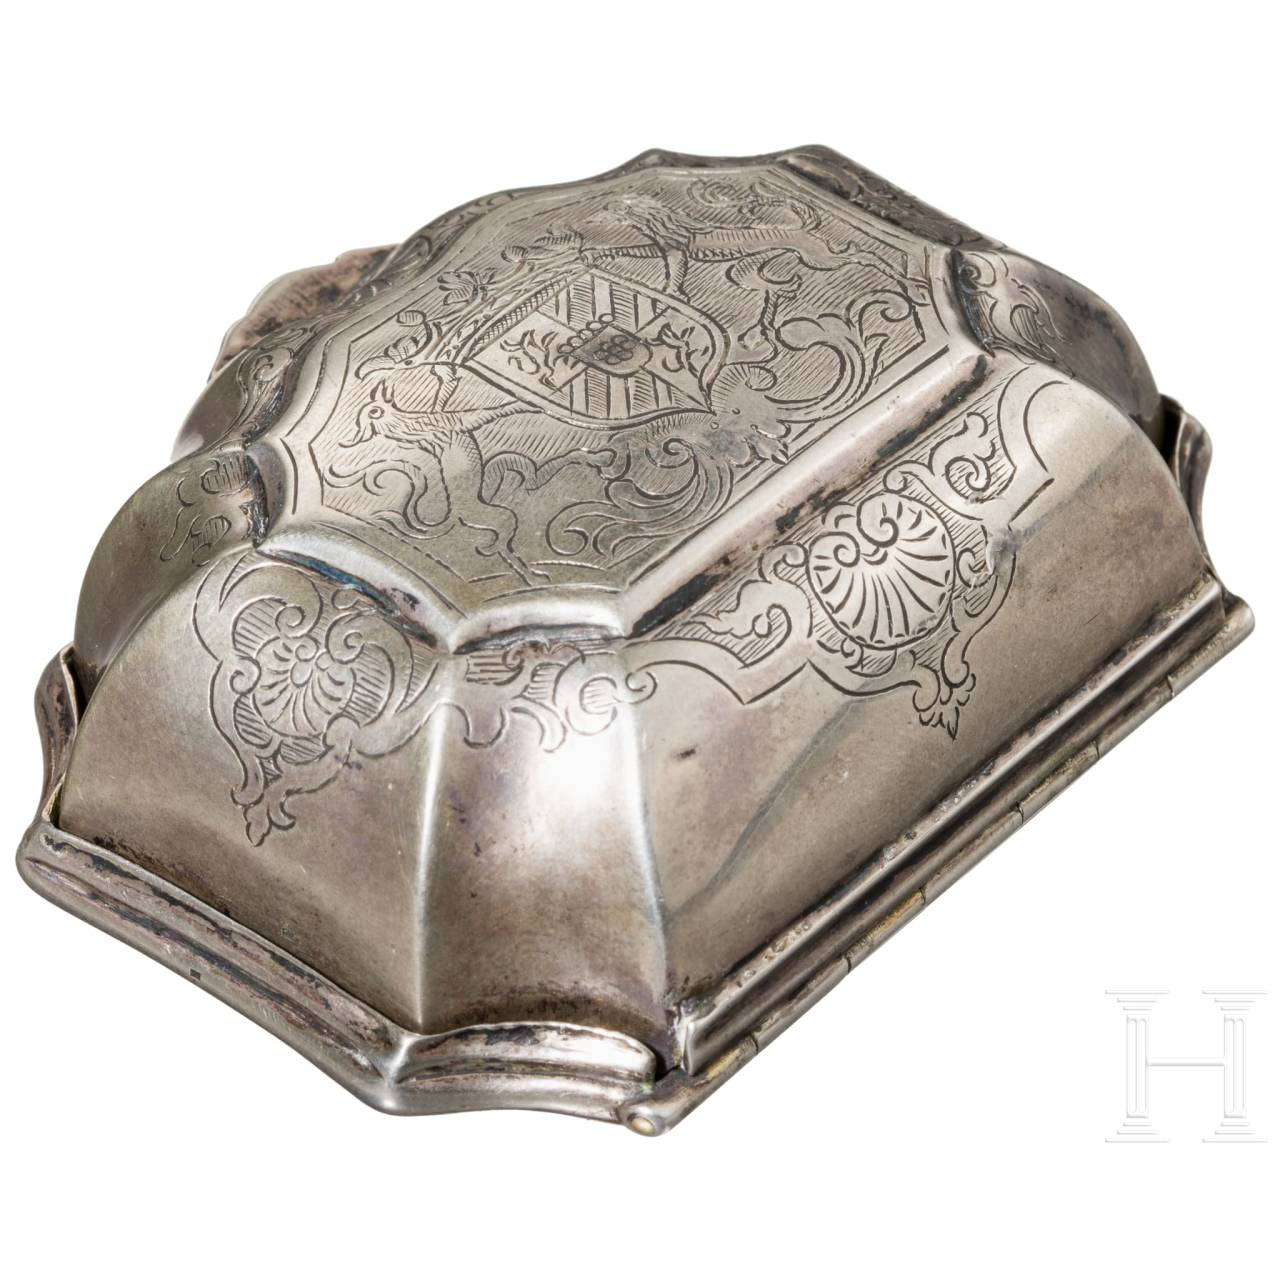 A fine German engraved silver and vermeil snuff box, 17th century